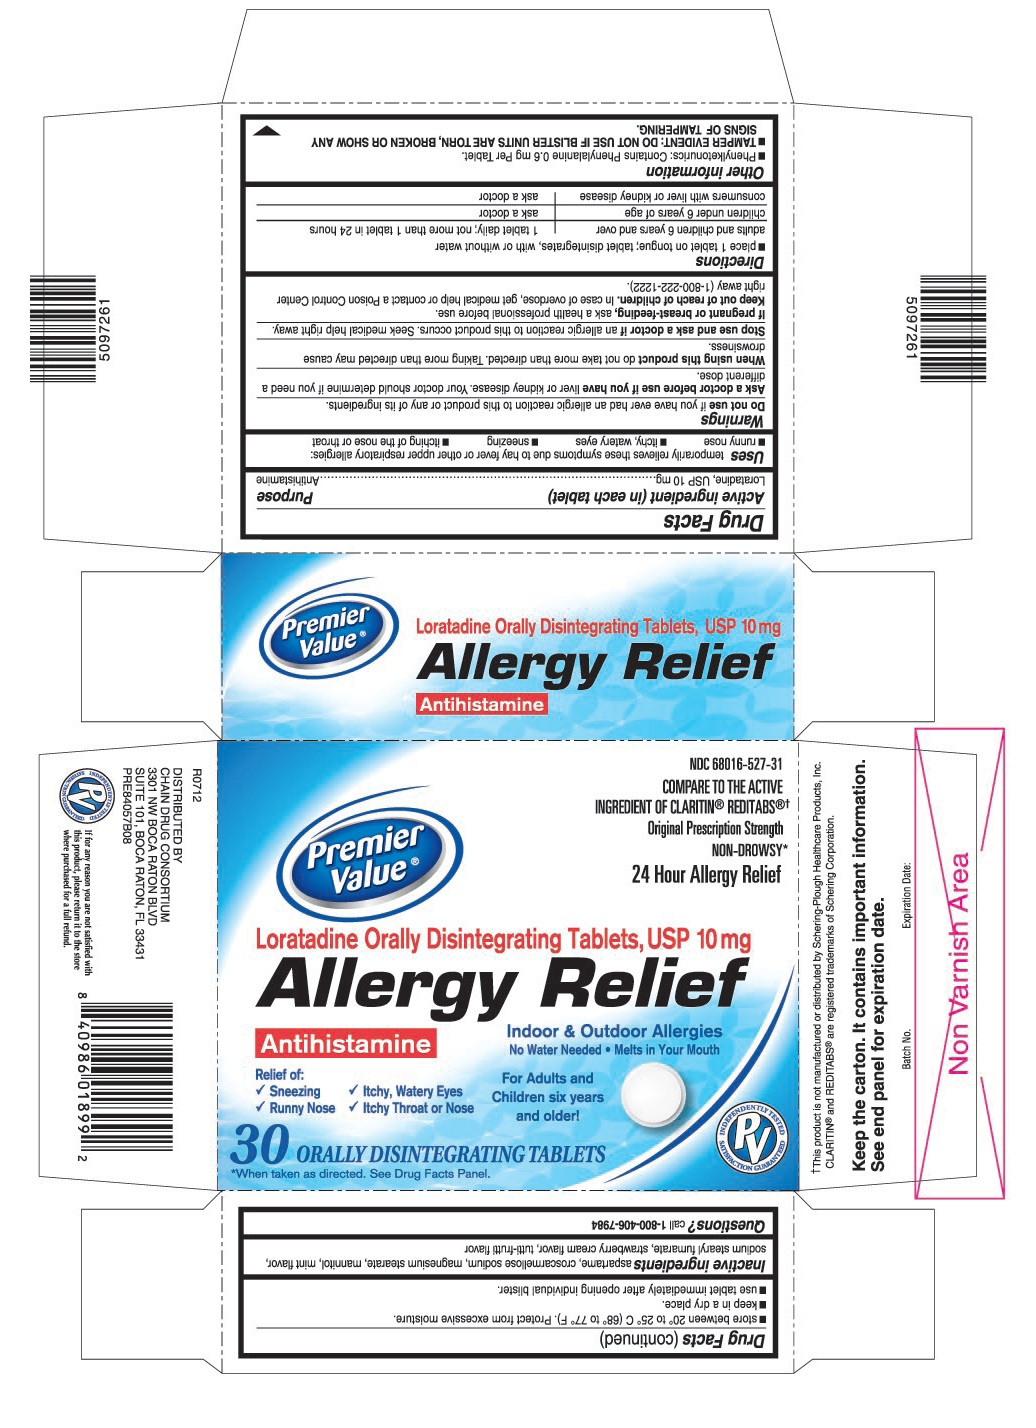 This is the 30 count blister carton label for Premier Value Loratadine ODT, USP 10 mg.